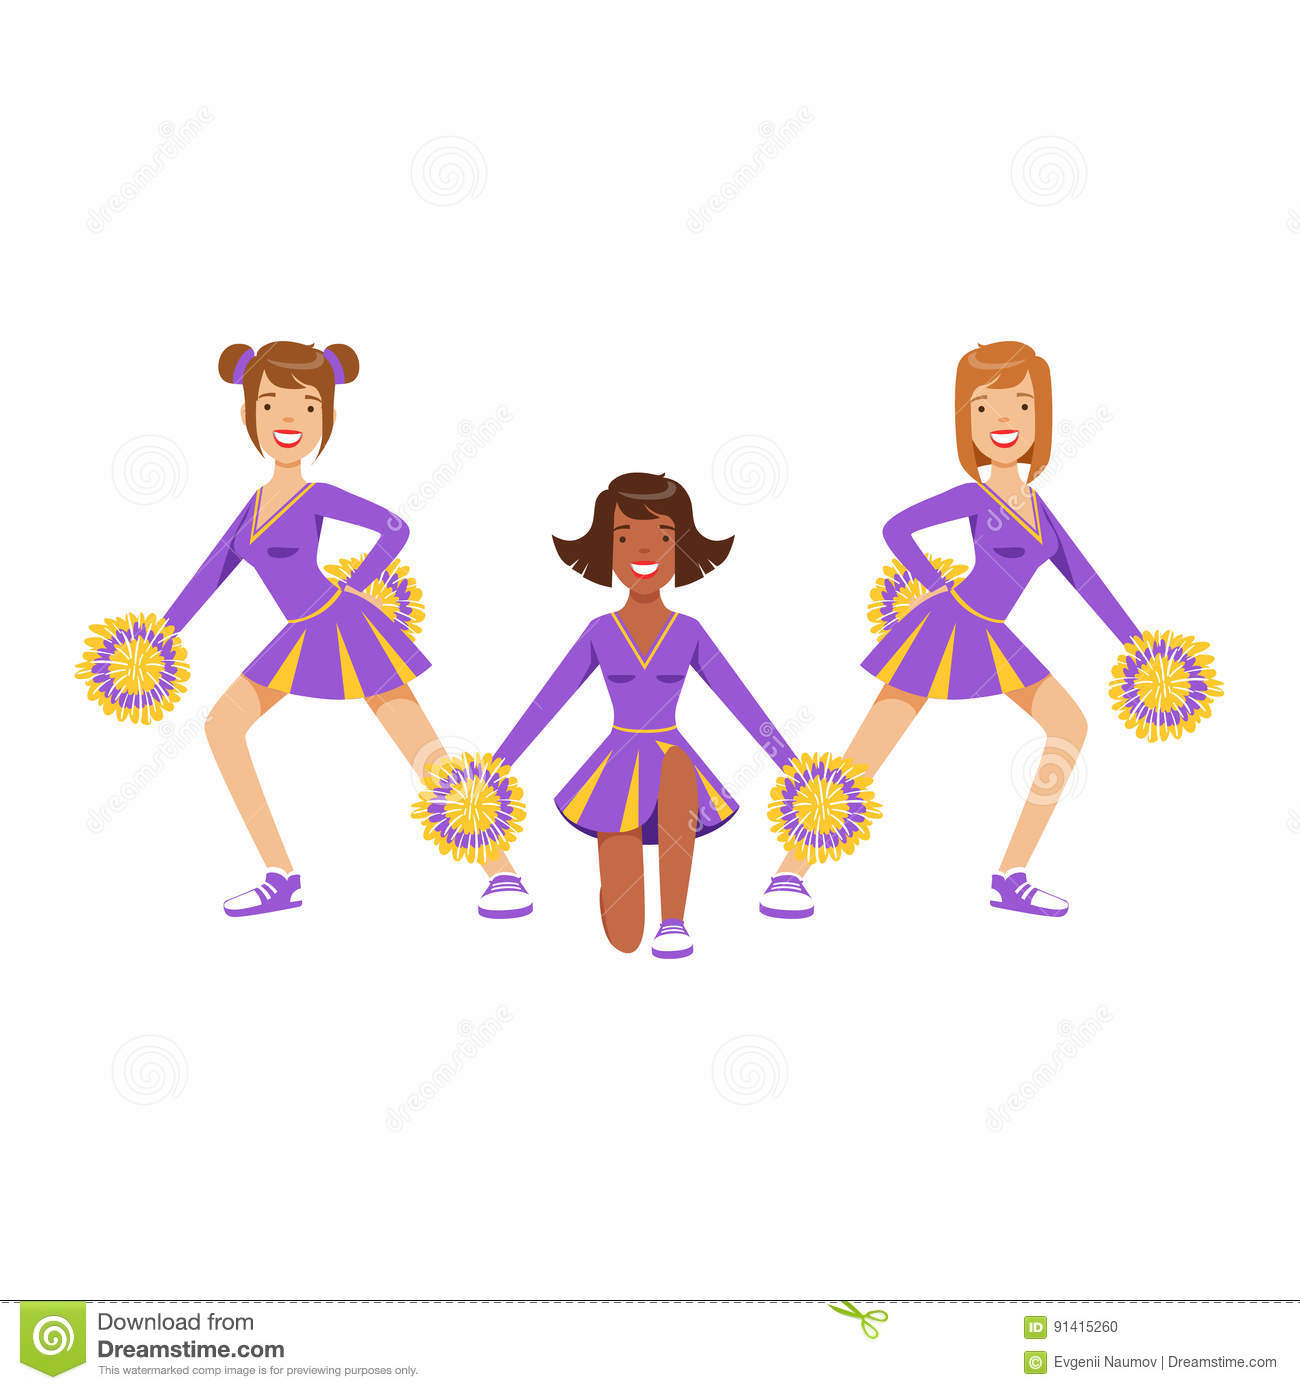 Cartoon Character Design Competition : Cheerleader girls with pompoms dancing to support football